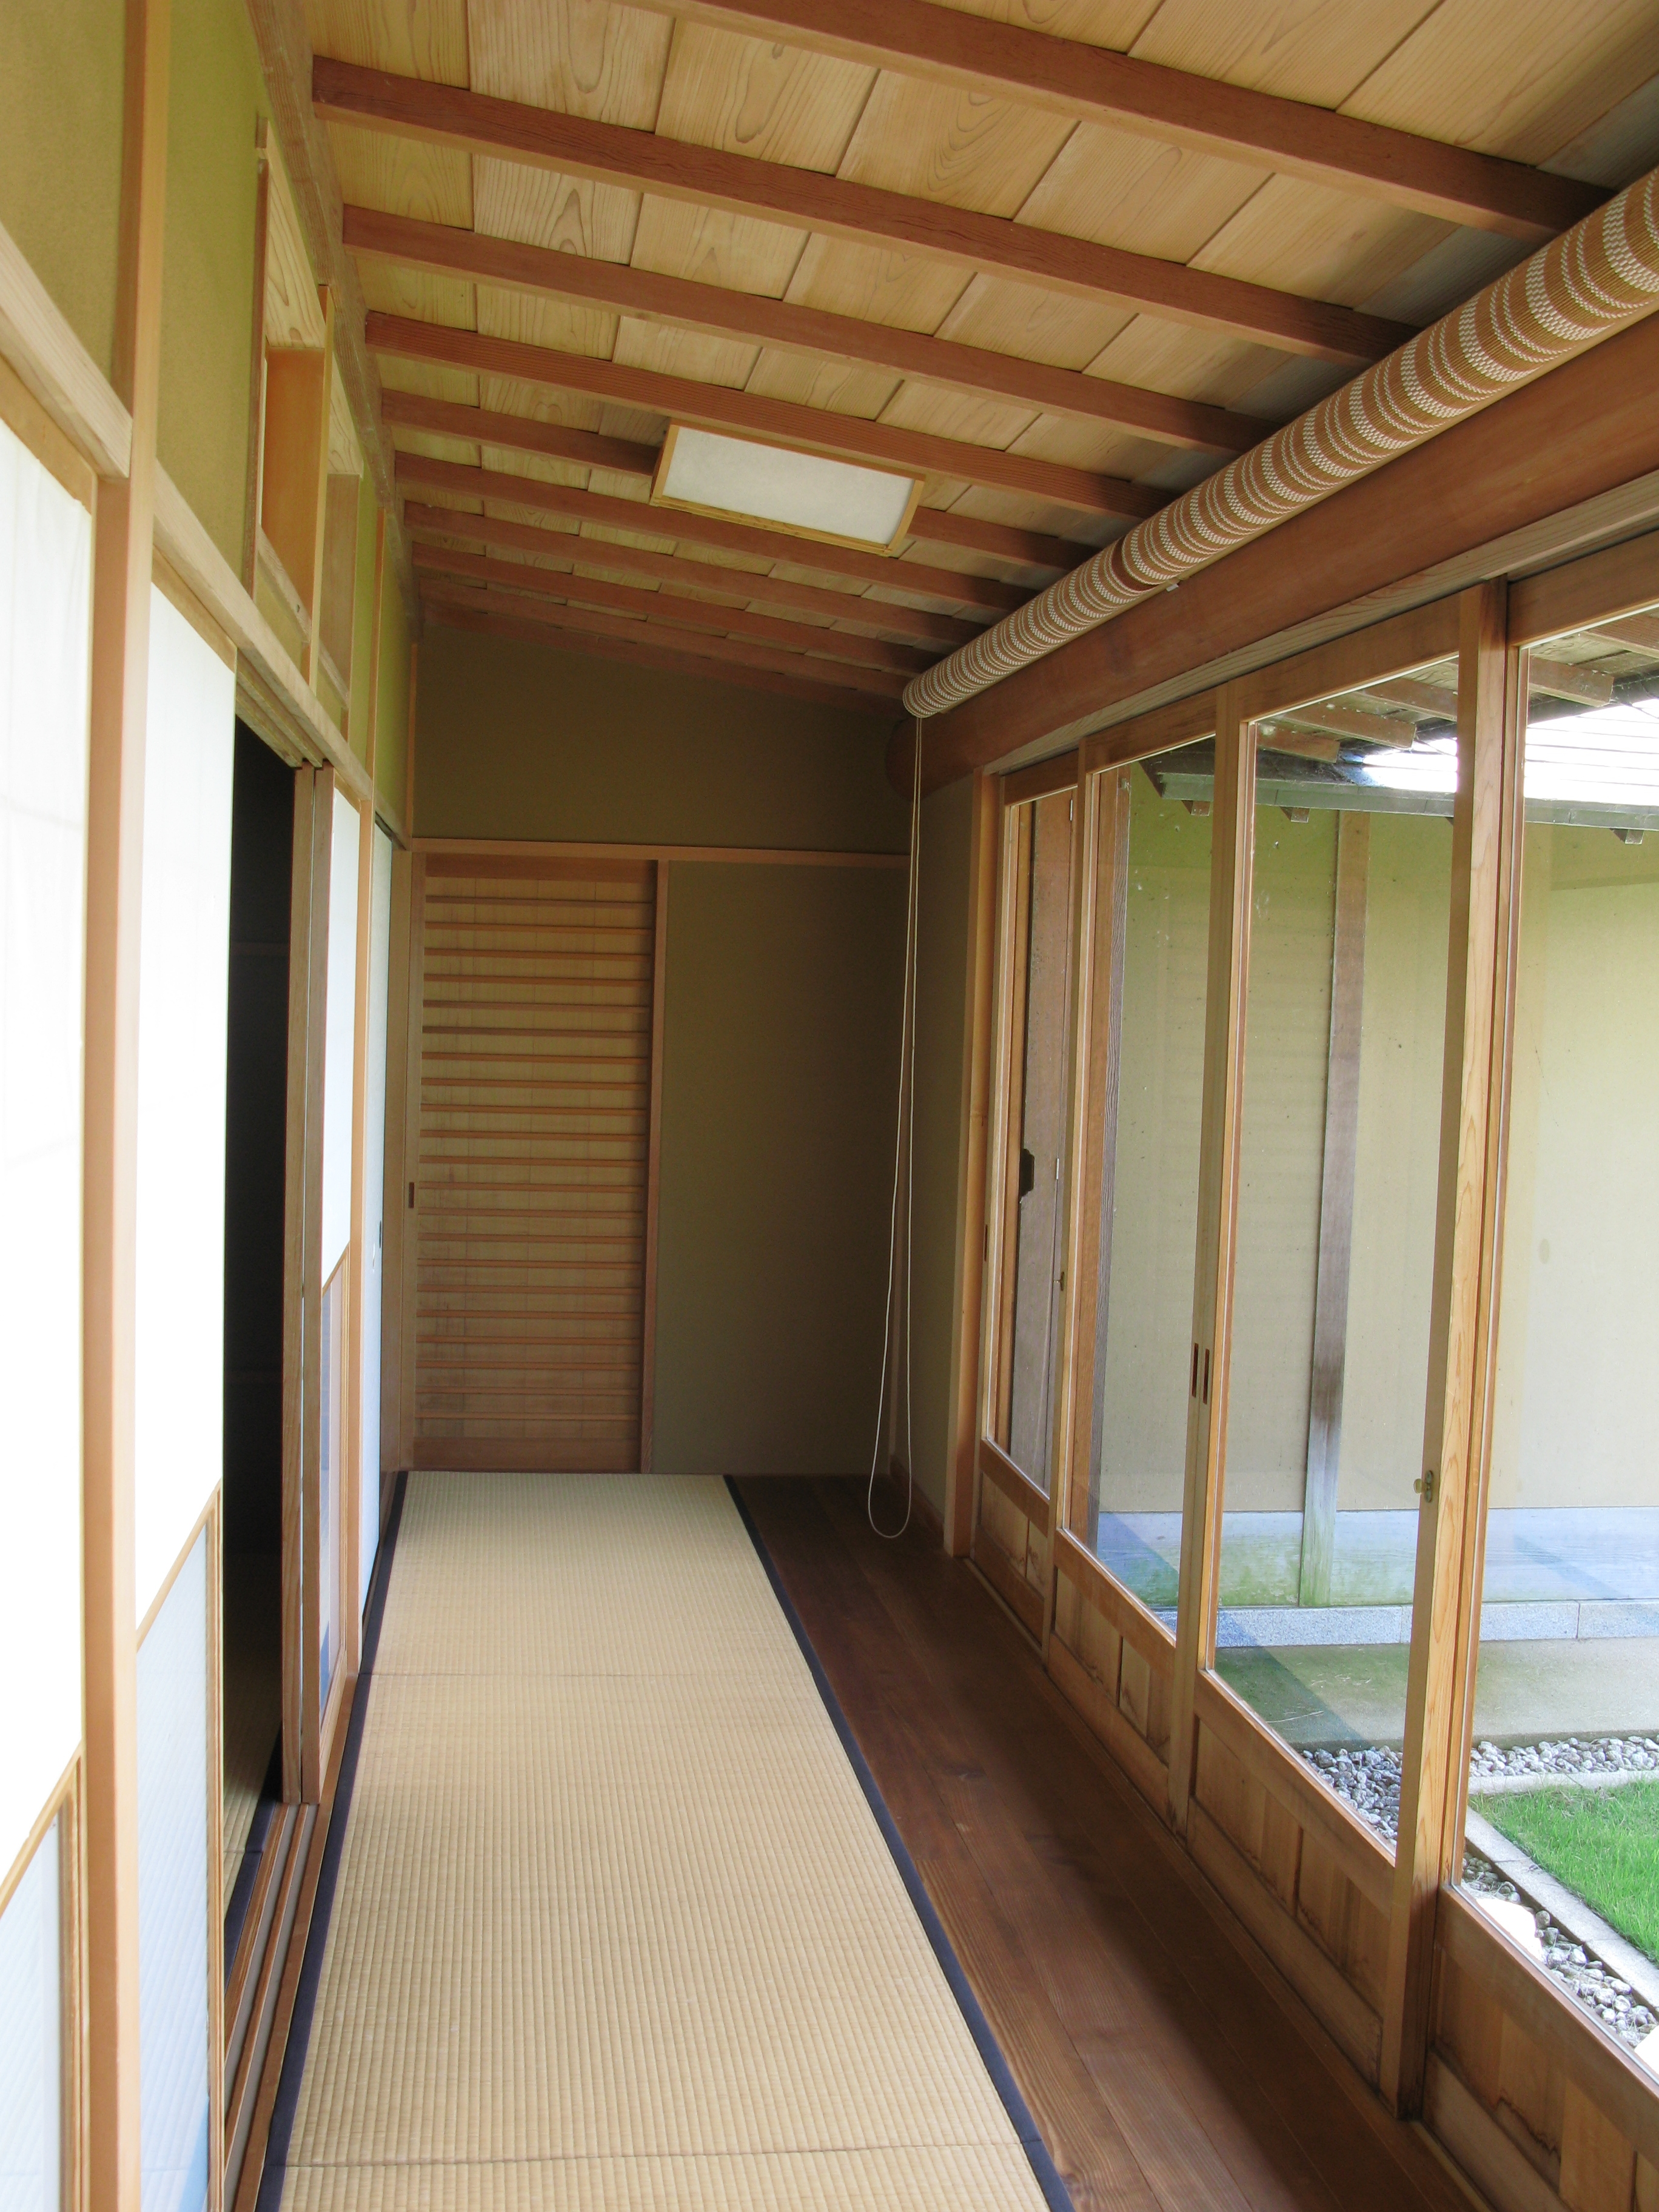 file japanese house traditional style interior design jpg wikimedia commons. Black Bedroom Furniture Sets. Home Design Ideas